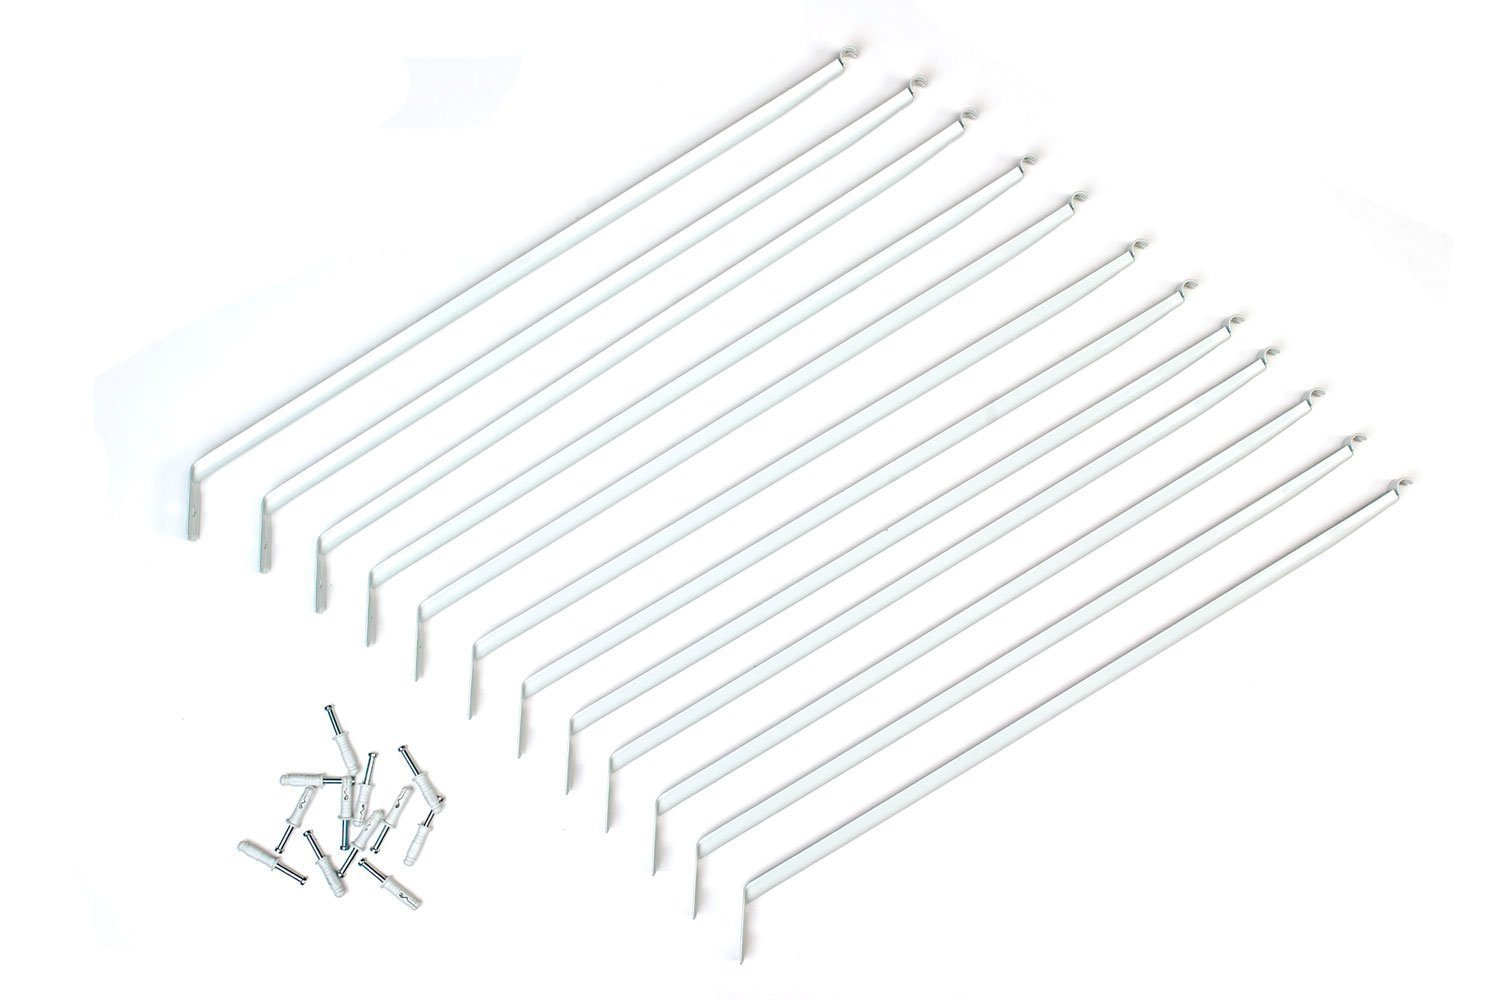 Closetmaid 12 Inch Support Brackets For Wire Shelving 12 Pack